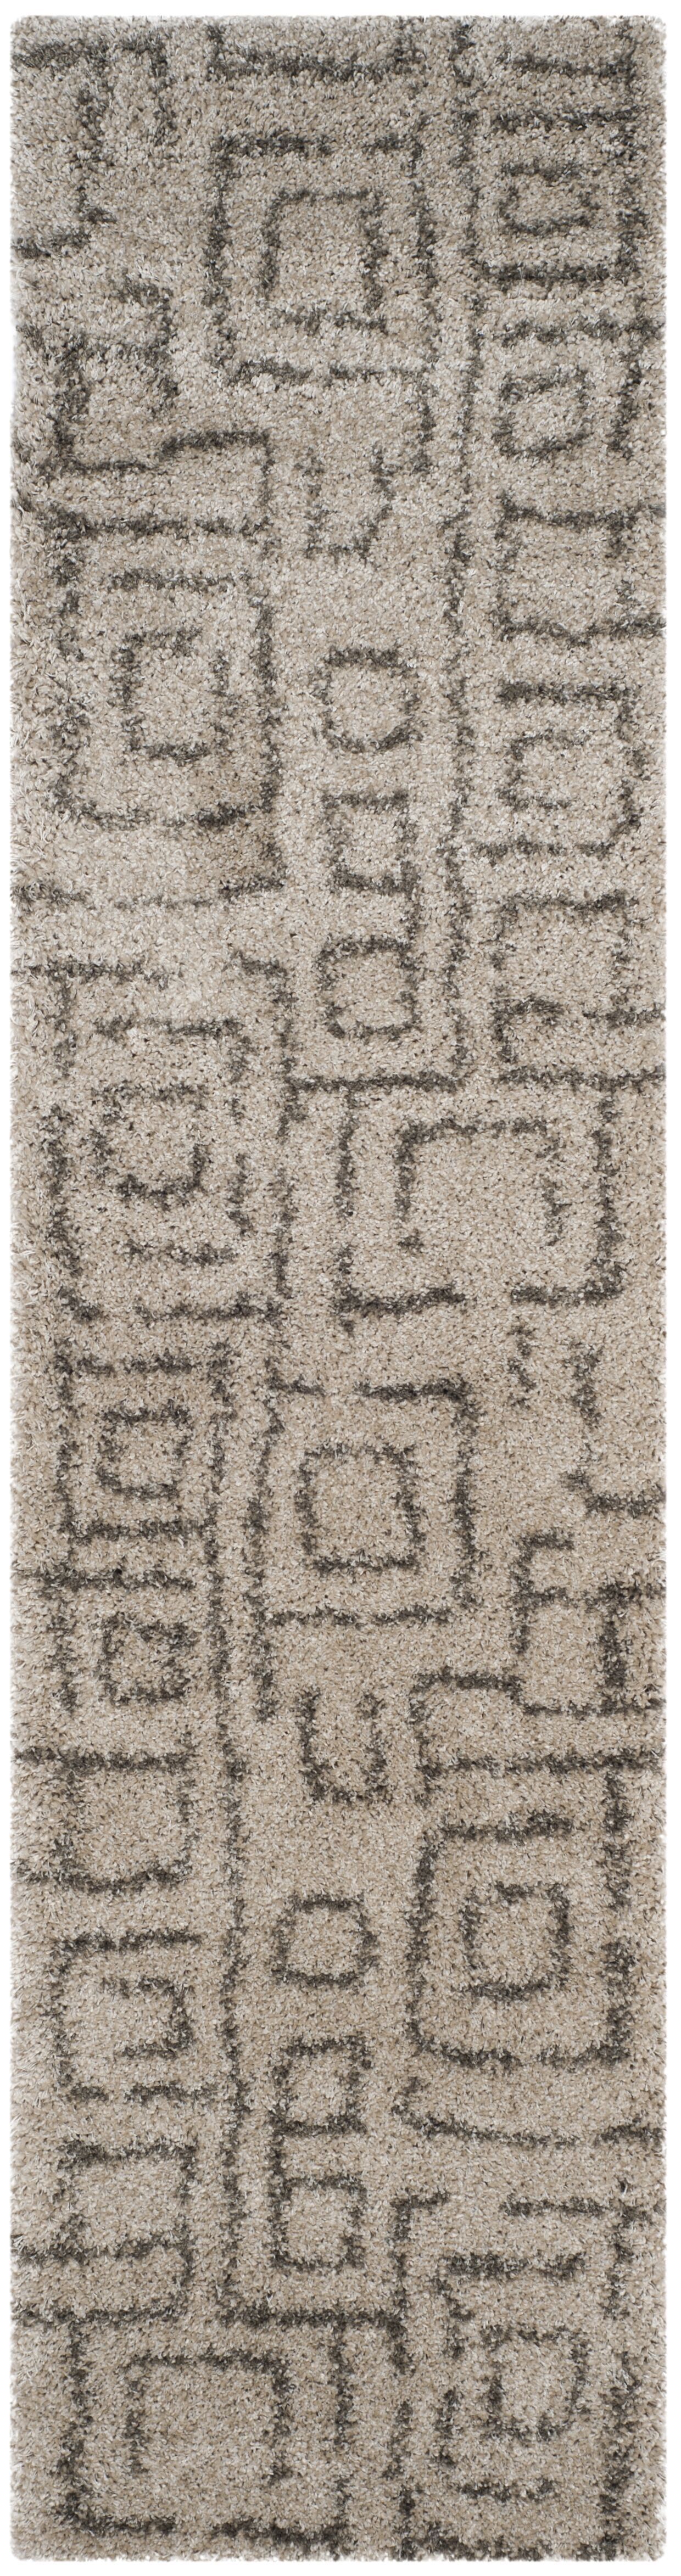 Starr Hill Taupe/Gray Area Rug Rug Size: Runner 2'3